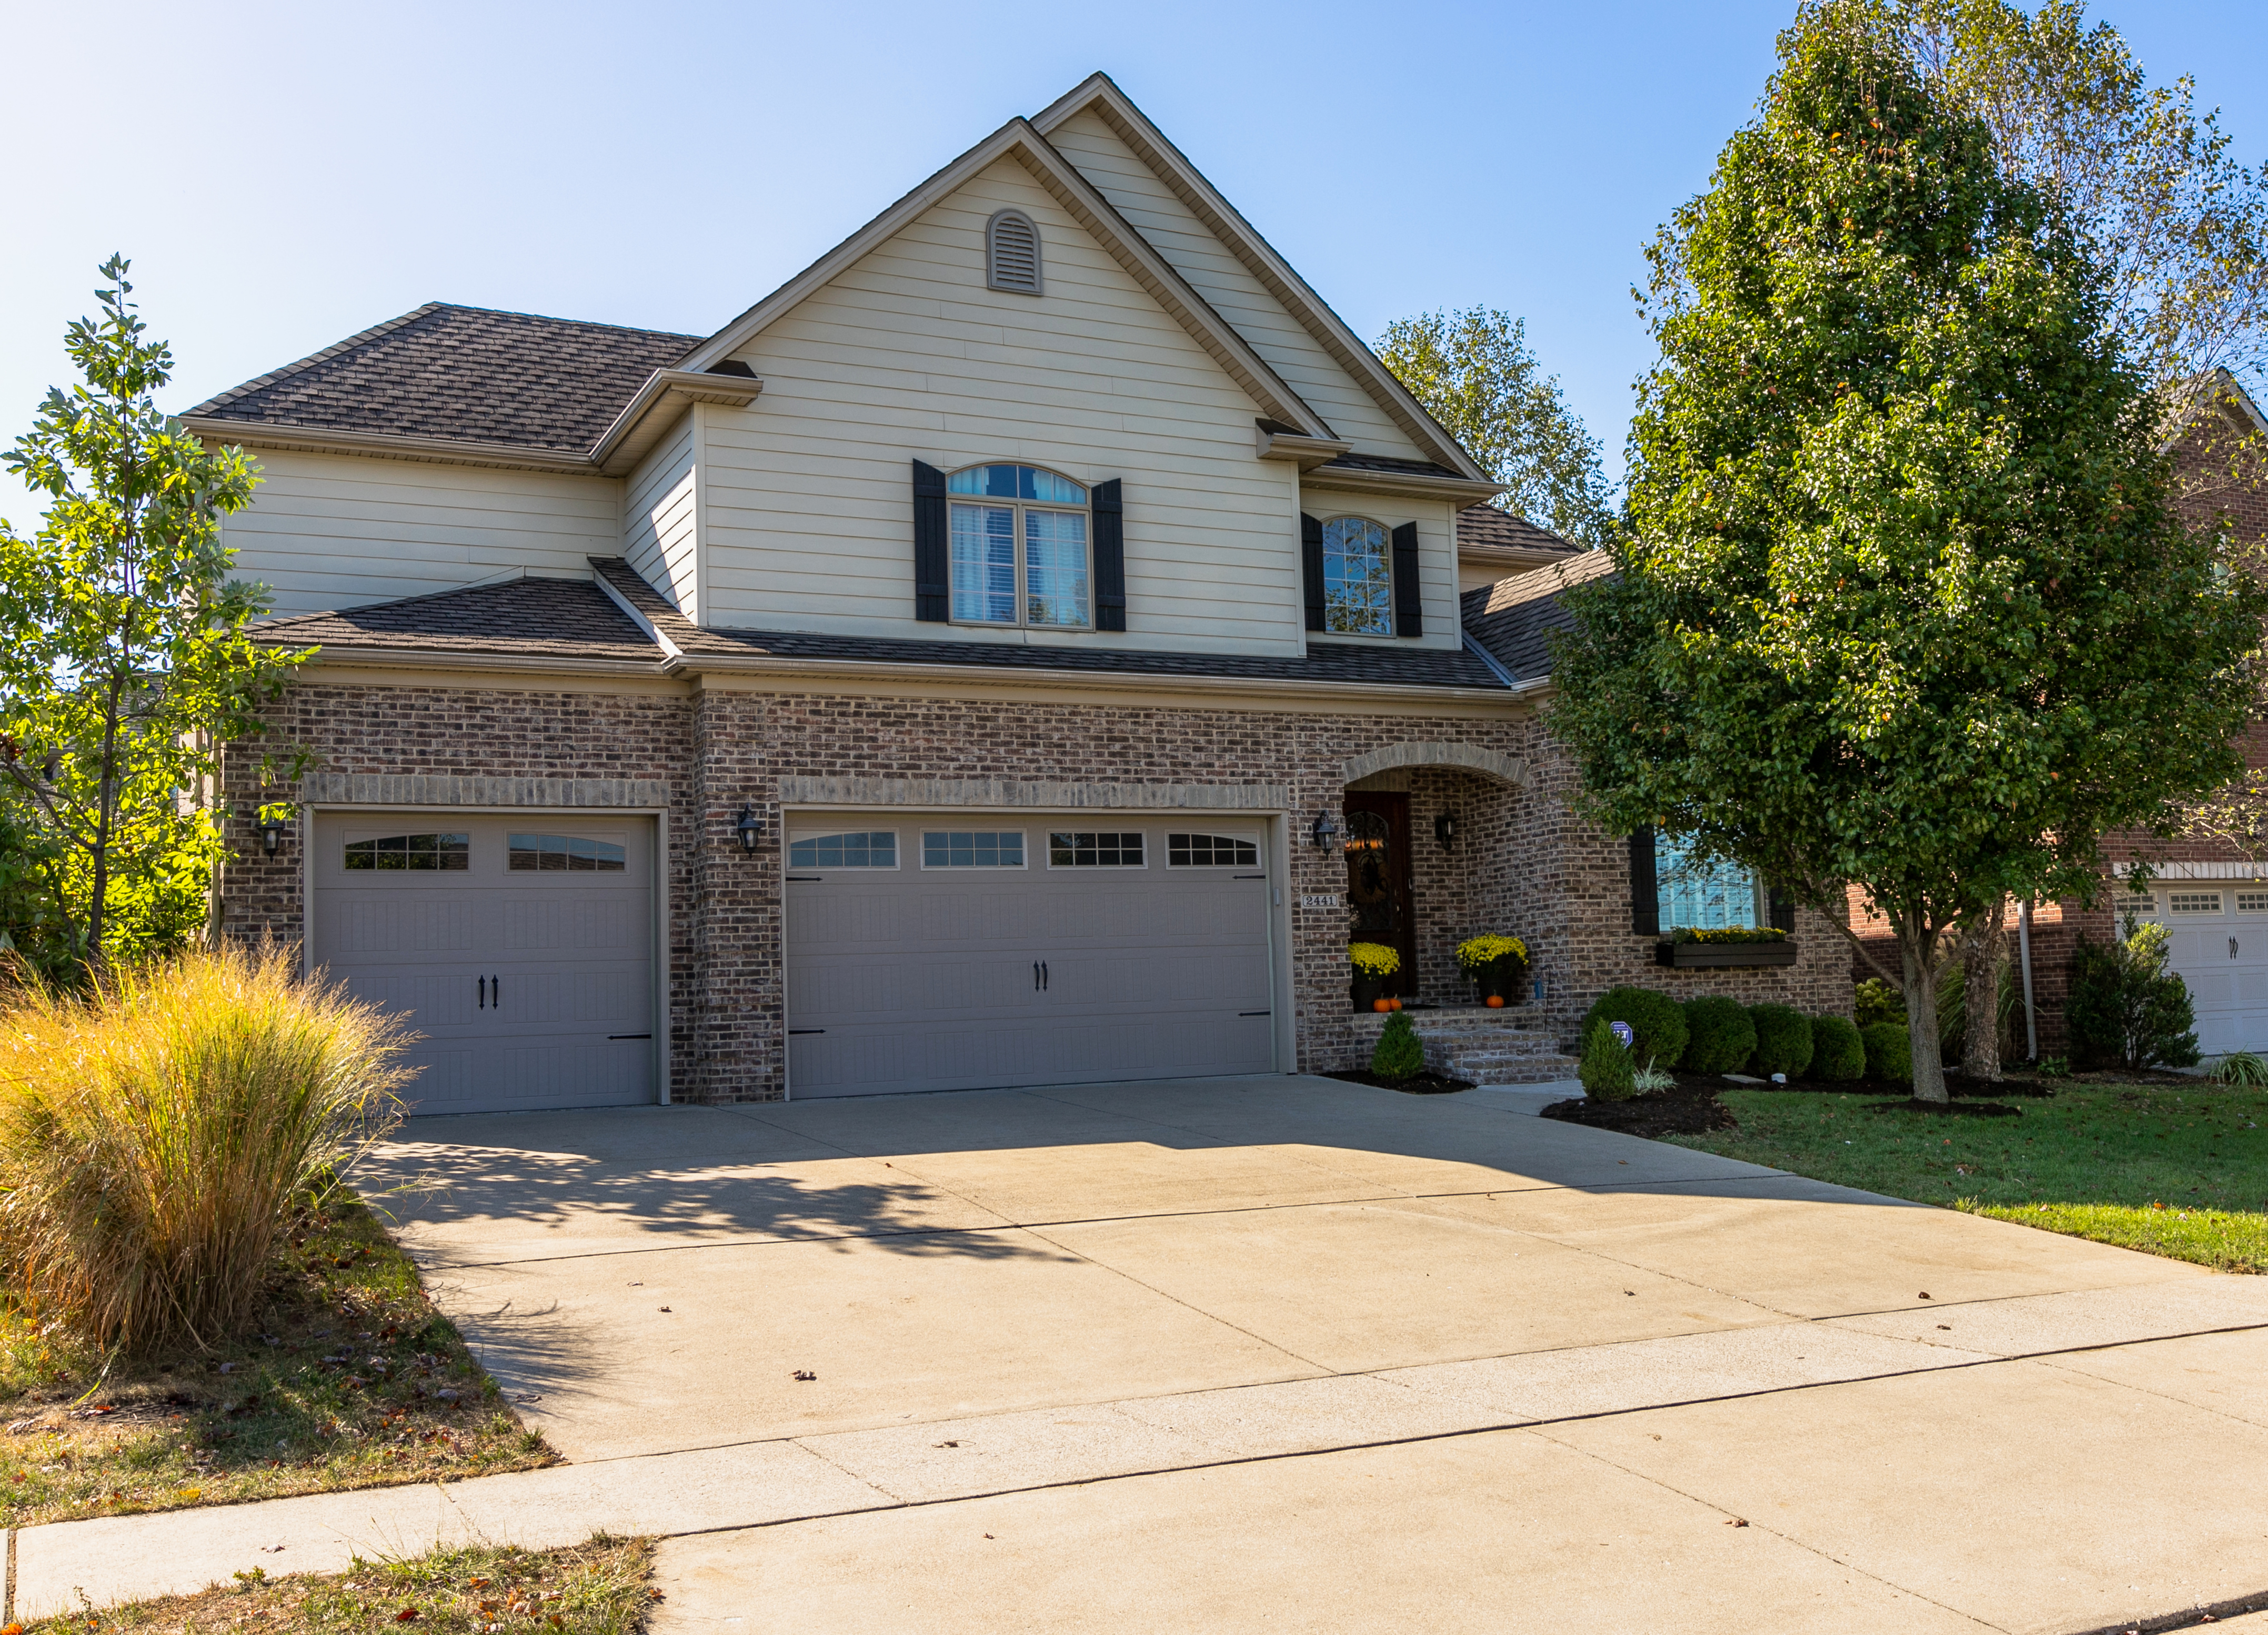 Front picture of 2441 Coroneo Lane in Lexington KY